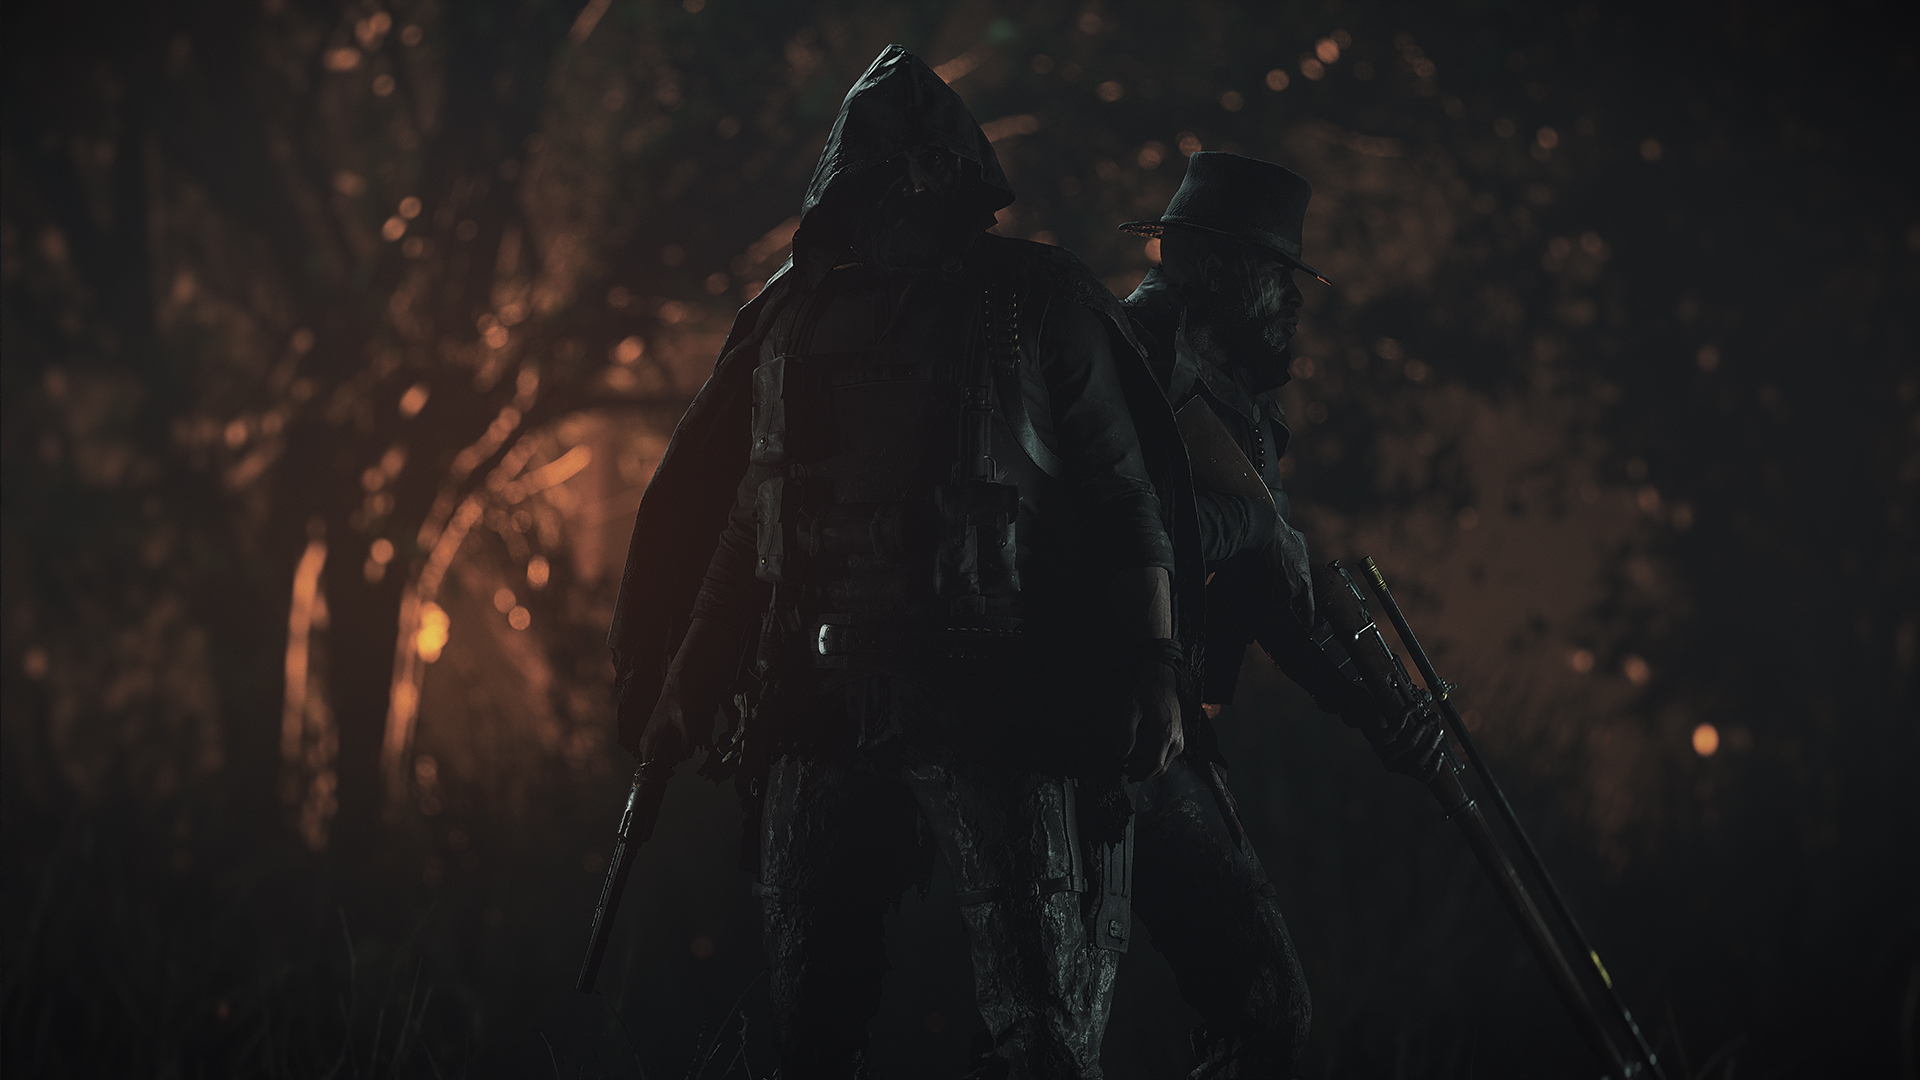 www.huntshowdown.com